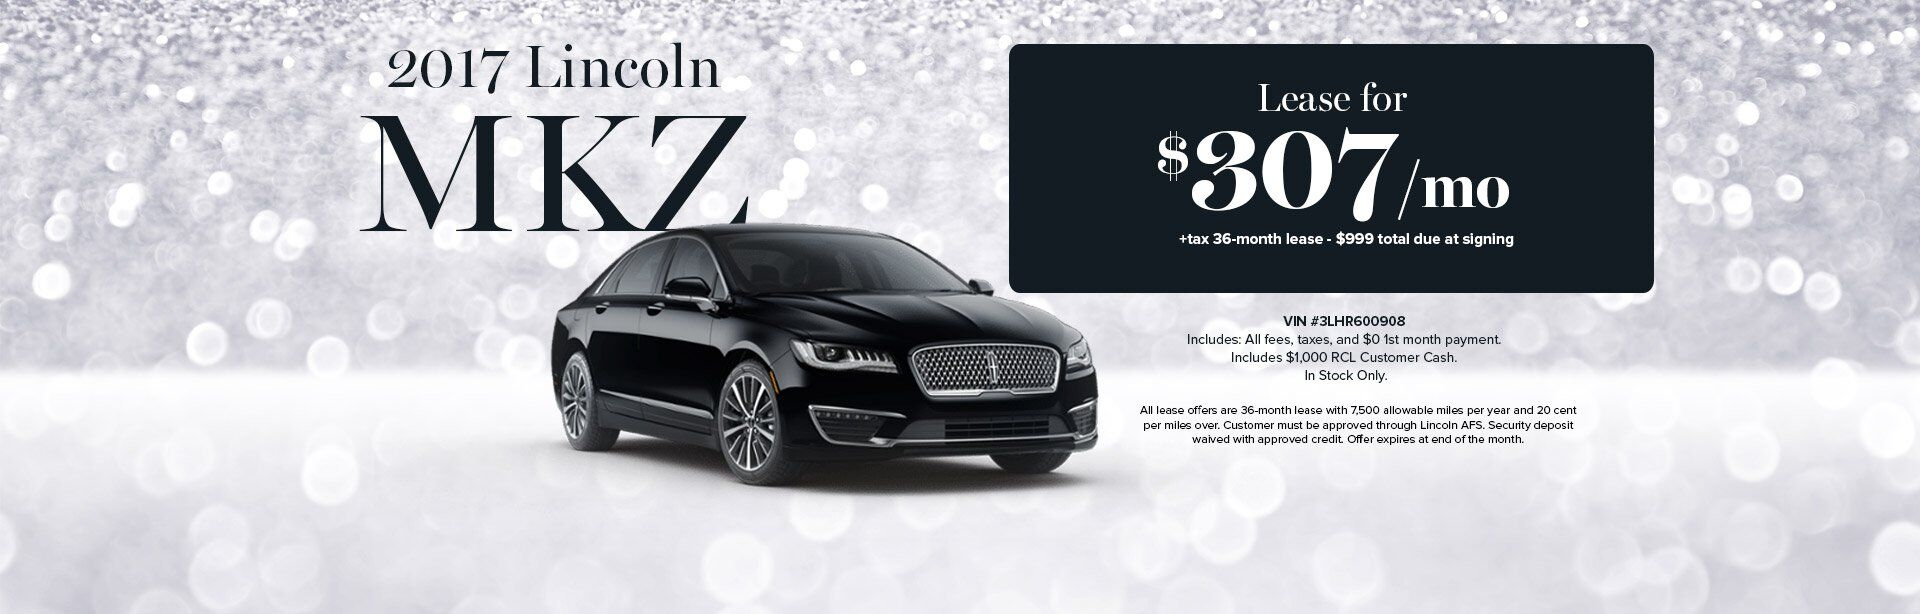 2017 MKZ Lease